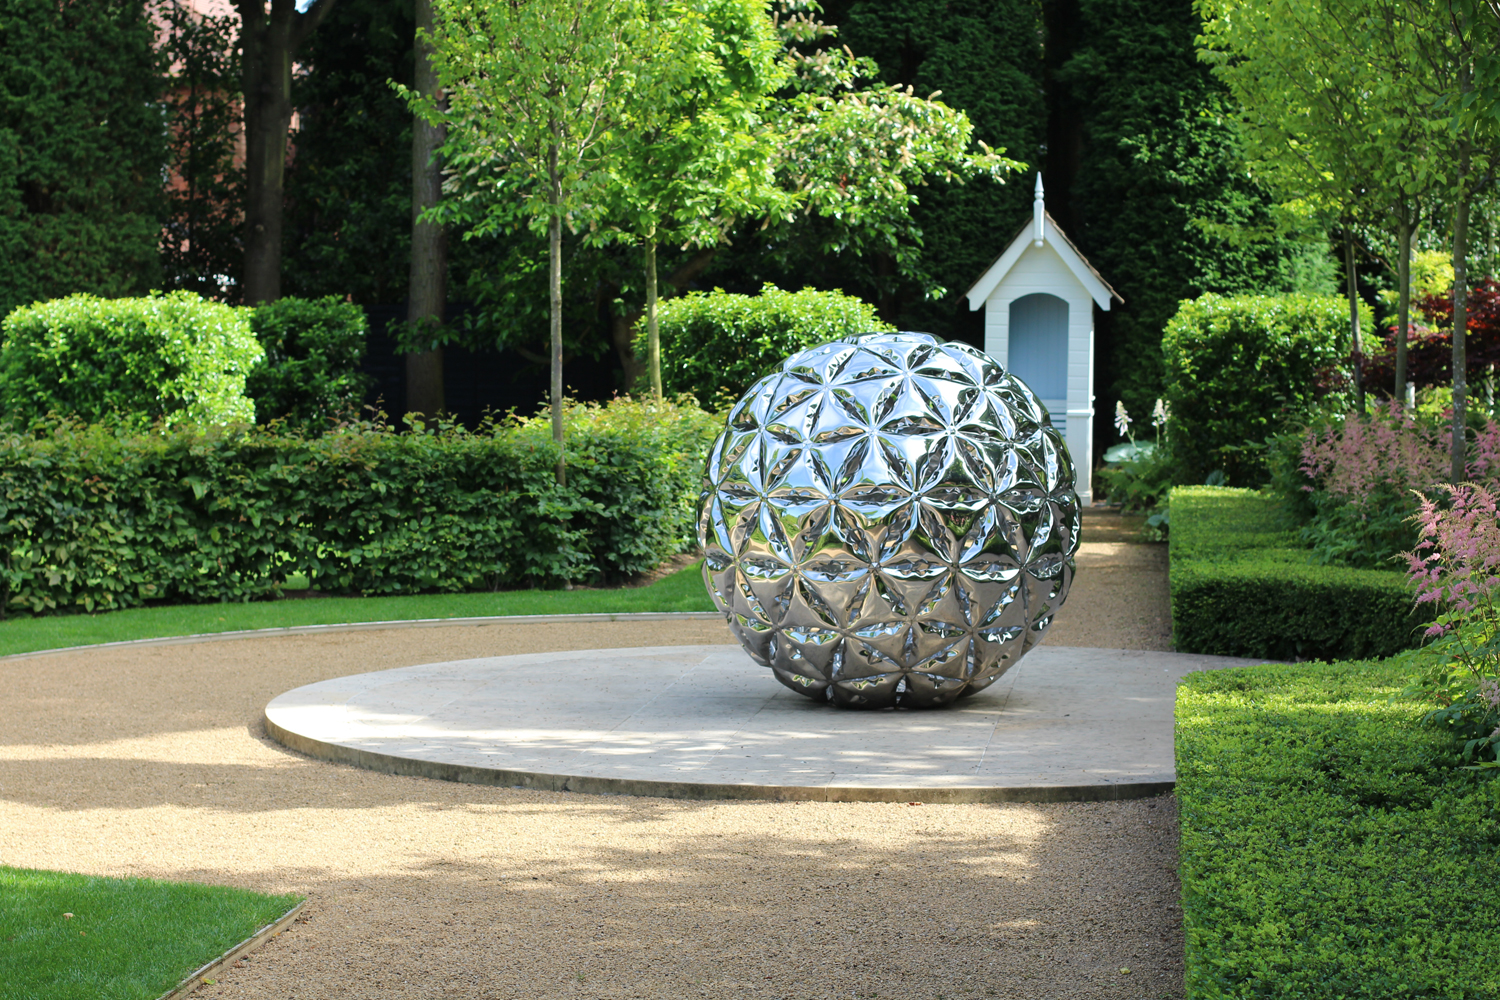 Garden Sphere  Inflated metal sphere sculpture -1.5m∅ geodesic sphere constructed from inflated metal triangular units in mirror polished stainless steel